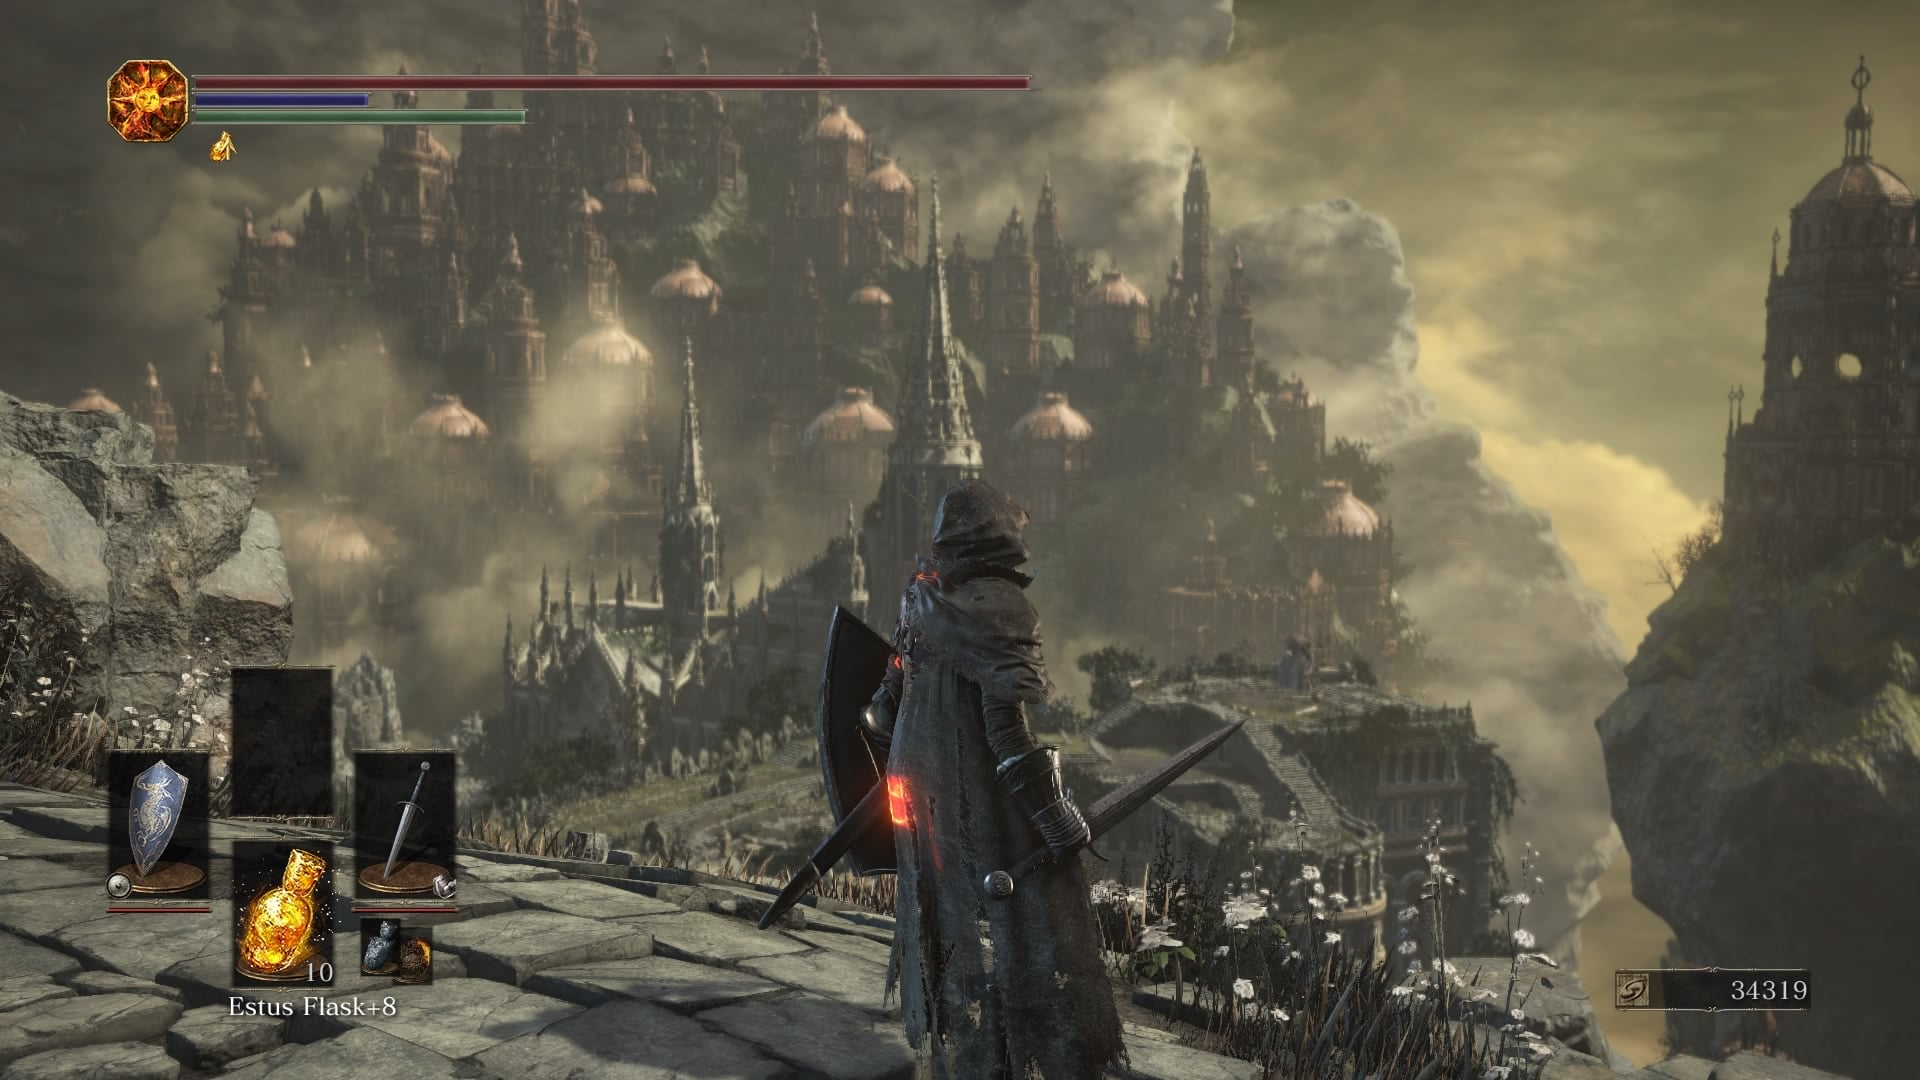 Dark Souls 3 The Ringed City DLC view vista